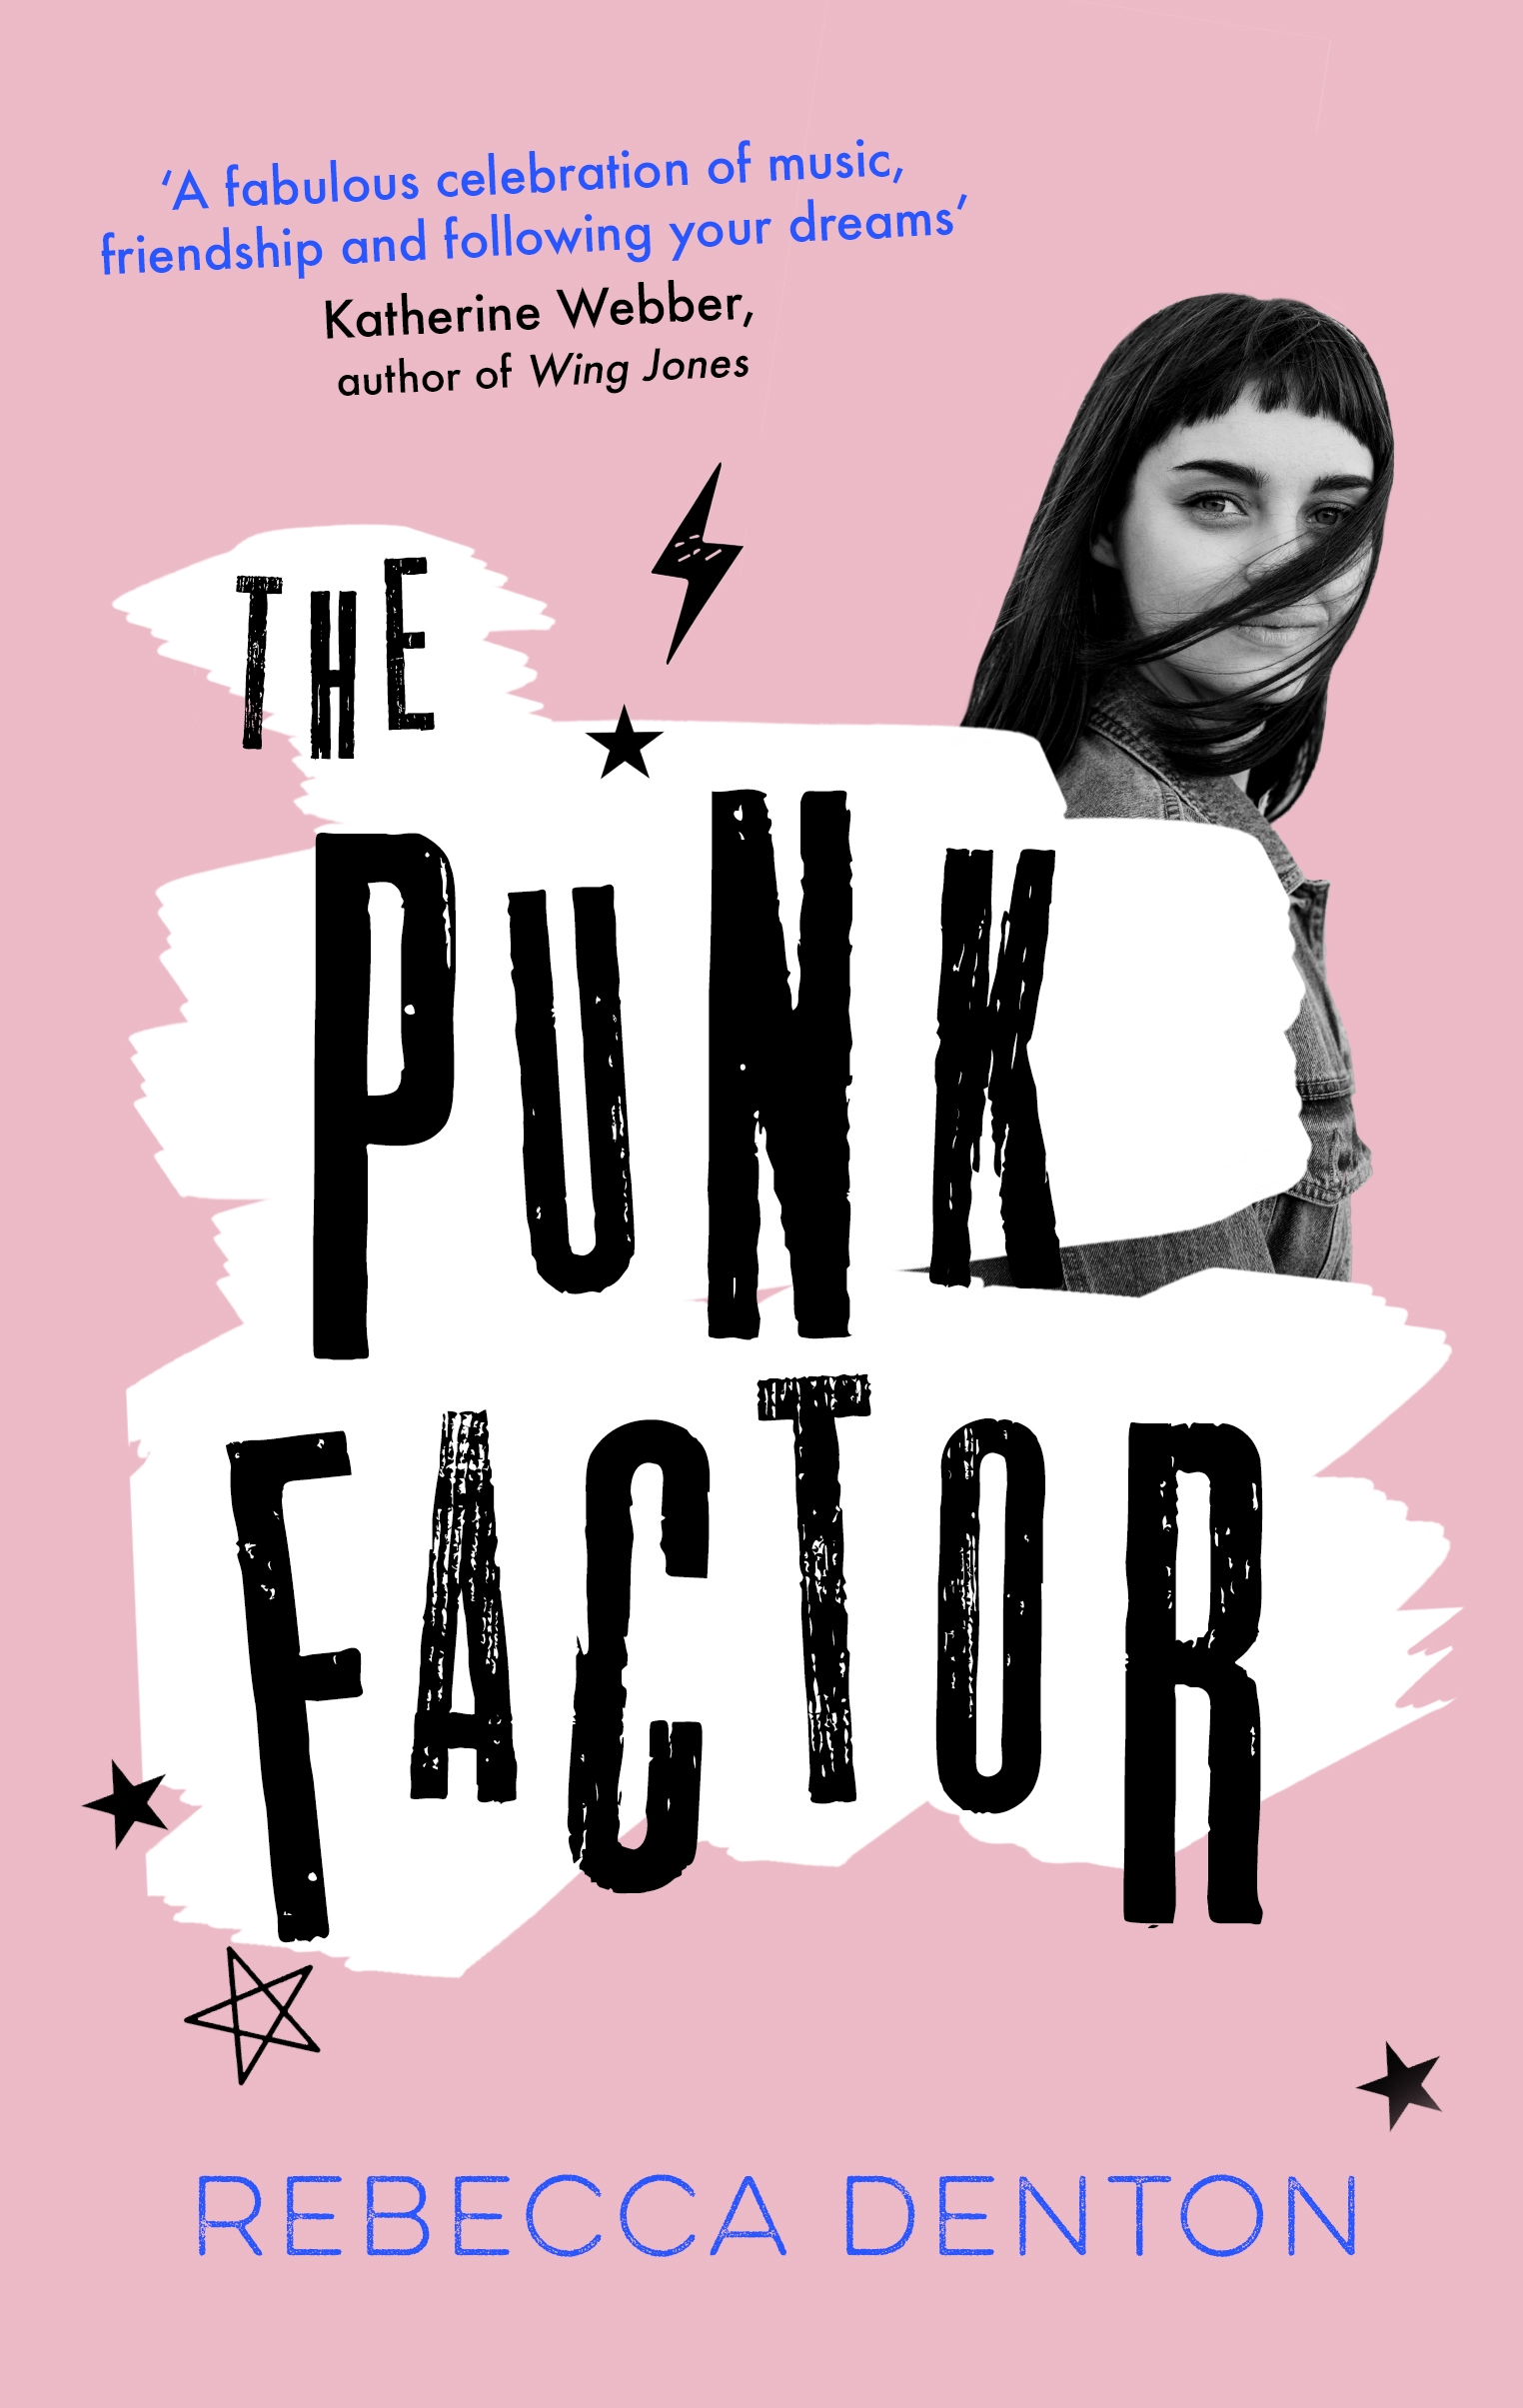 THE PUNK FACTOR  Contemporary YA, 352 pages Atom, Nov 2018  Seventeen-year-old Frankie is obsessed with what everyone else is thinking. She can keep up with the chat - from feminism to tattoos - but when it comes to her own ideas, it's not so easy to hide her lack of confidence. But there is one personal obsession she can't deny - her art student drop-out ex boyfriend Doc.  With the help of her best friend, Haruna, Frankie forms a punk rock girl band to attract his attention. She's got it all sorted; the Instagram page is live, the handmade posters are everywhere, and the band even has a first gig lined up (even if they are playing to a handful of retired bingo fans). But in her efforts to make the band a success and get Doc to notice her, Frankie starts to care less about what Doc thinks and more about how much she loves making very  loud music. She finally feels a glimpse of who she can be, independent of anyone else. Then one day, Doc decides he is going to win her back . . .  Punk is nothing without the freedom to be exactly who you want. But what if you're not sure who that is yet? Can you make your own noise when everyone else seems so much louder than you?